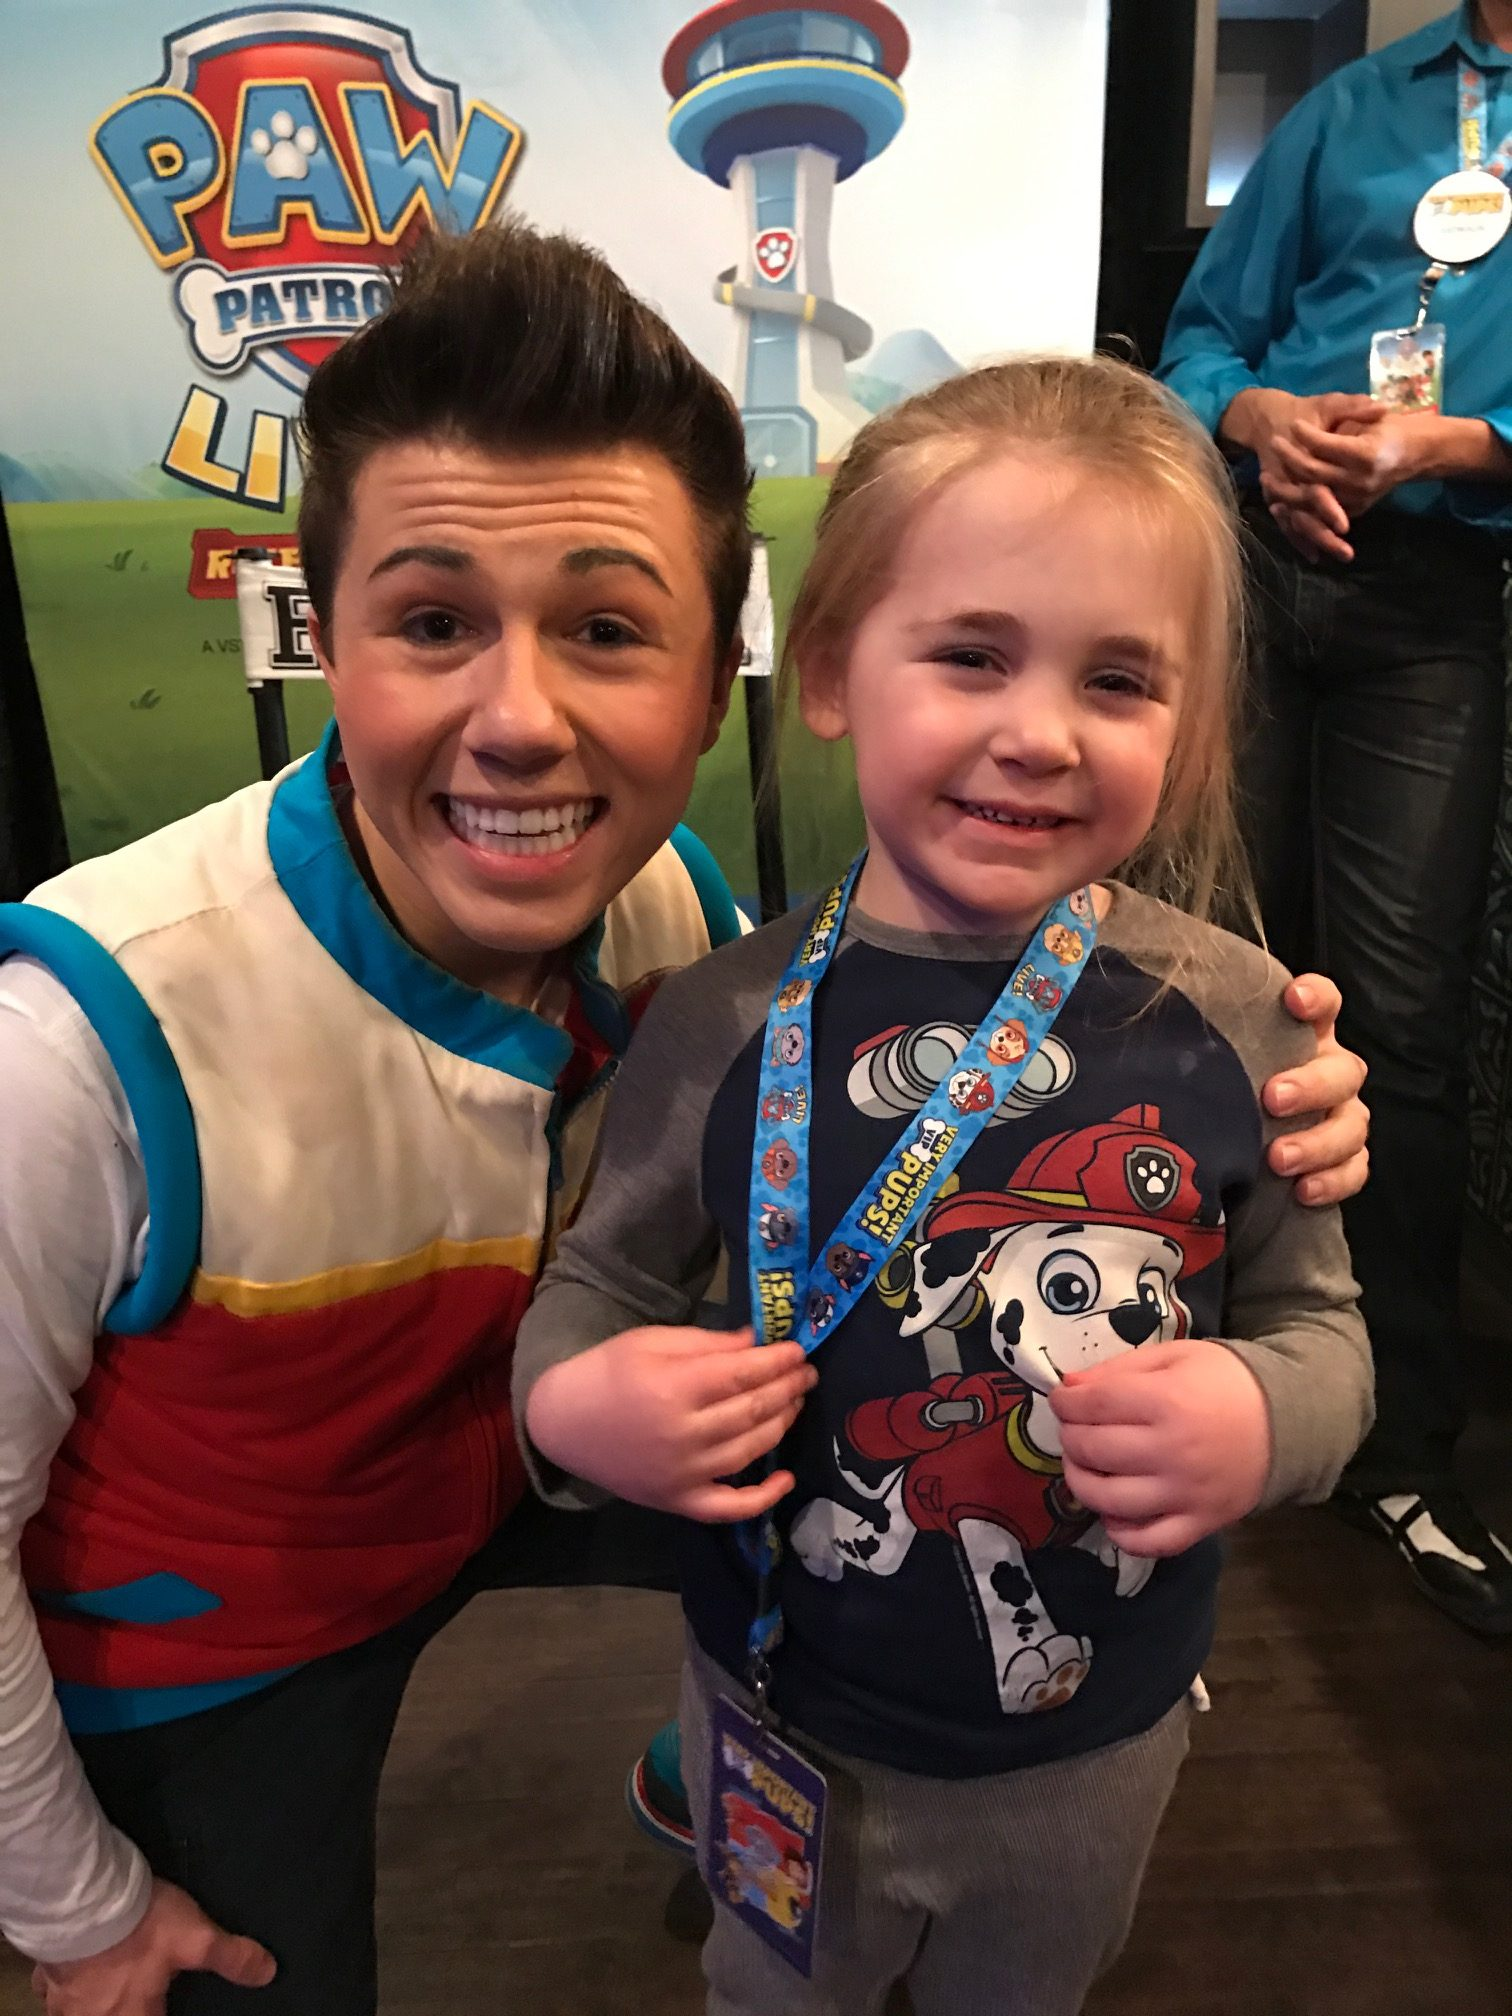 Paw Patrol Meet And Greet Chase Marshall At Youtube | News ...